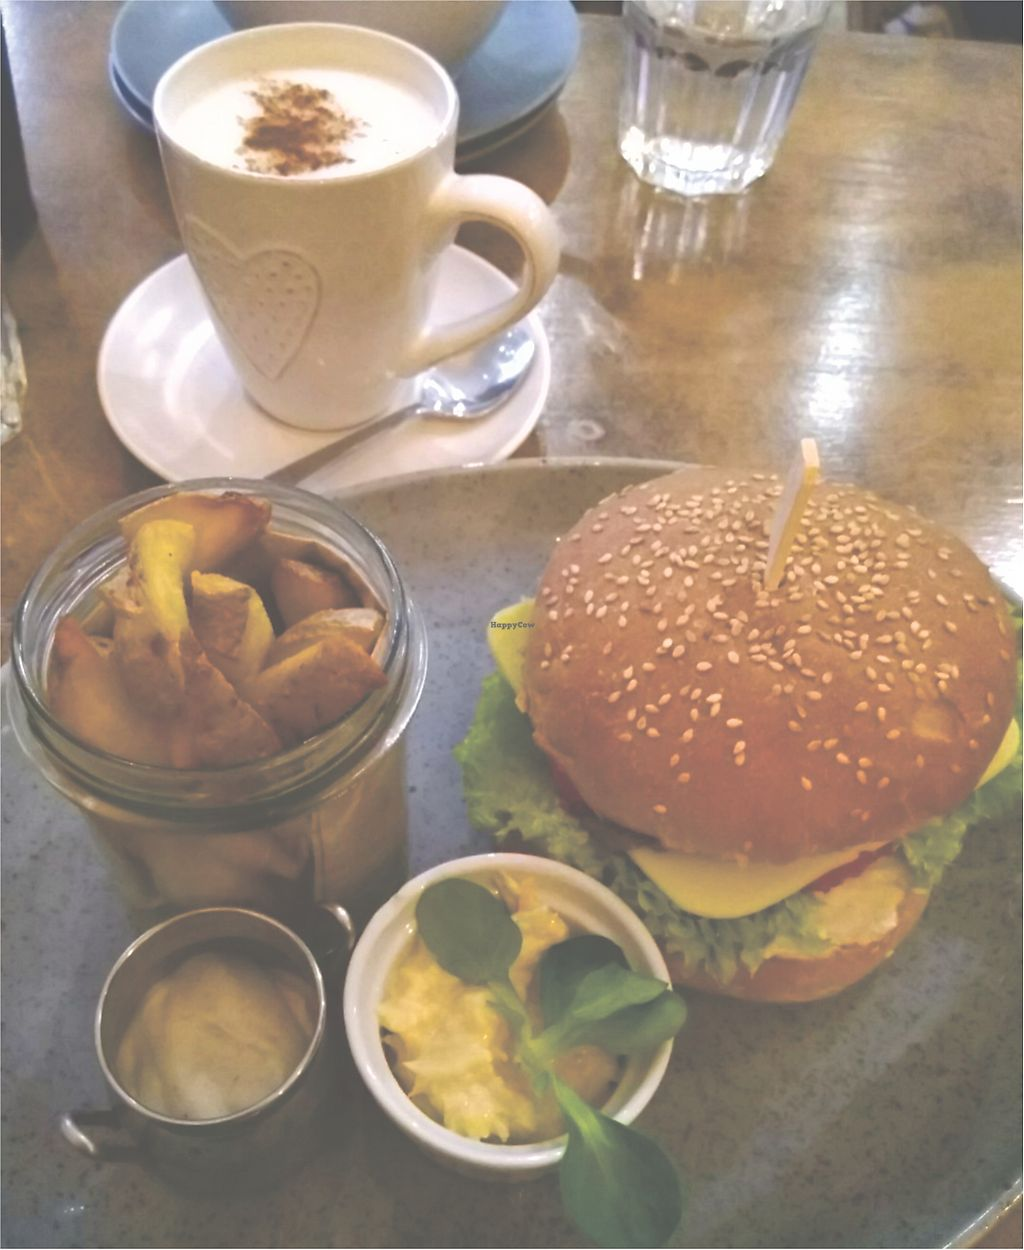 "Photo of Balans Bistro  by <a href=""/members/profile/Waldo_97"">Waldo_97</a> <br/>Balans Bistro veggie burger <br/> April 14, 2018  - <a href='/contact/abuse/image/84394/385827'>Report</a>"